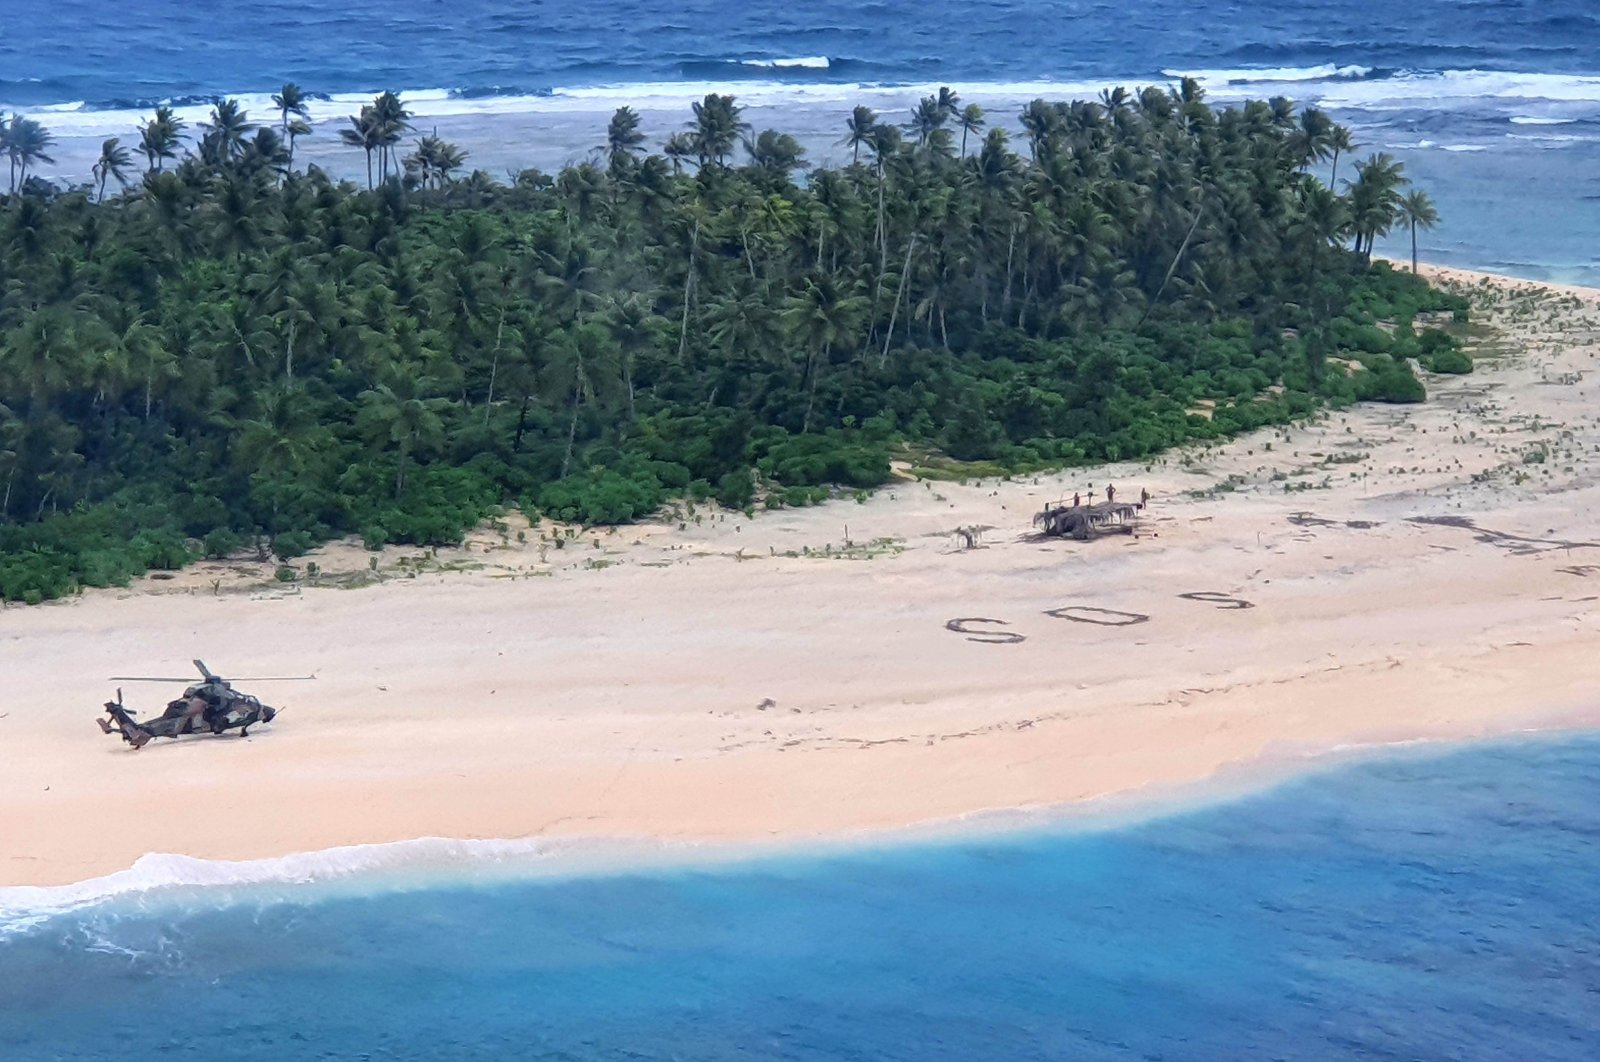 """An Australian Army ARH Tiger helicopter lands near the letters """"SOS"""" on a beach on Pikelot Island where three men were found in good condition after being missing for three days, Aug. 2, 2020. (Australian Defence Force Photo via AFP)"""